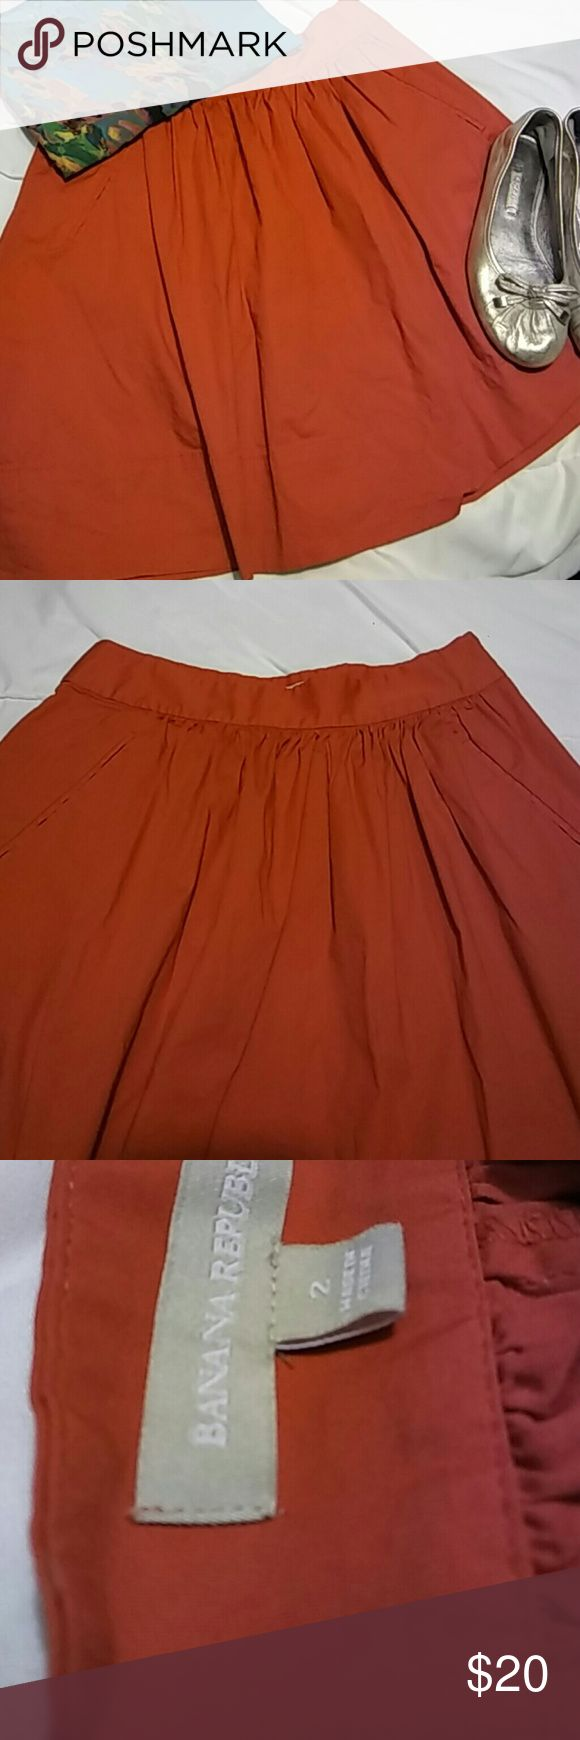 Banana Republic Red Zip Up Skirt Excellent condition Banana Republic skirt with pockets. Size 2. 97% cotton, 3% spandex. Flats and shirt not included, check other listings for those. Banana Republic Skirts